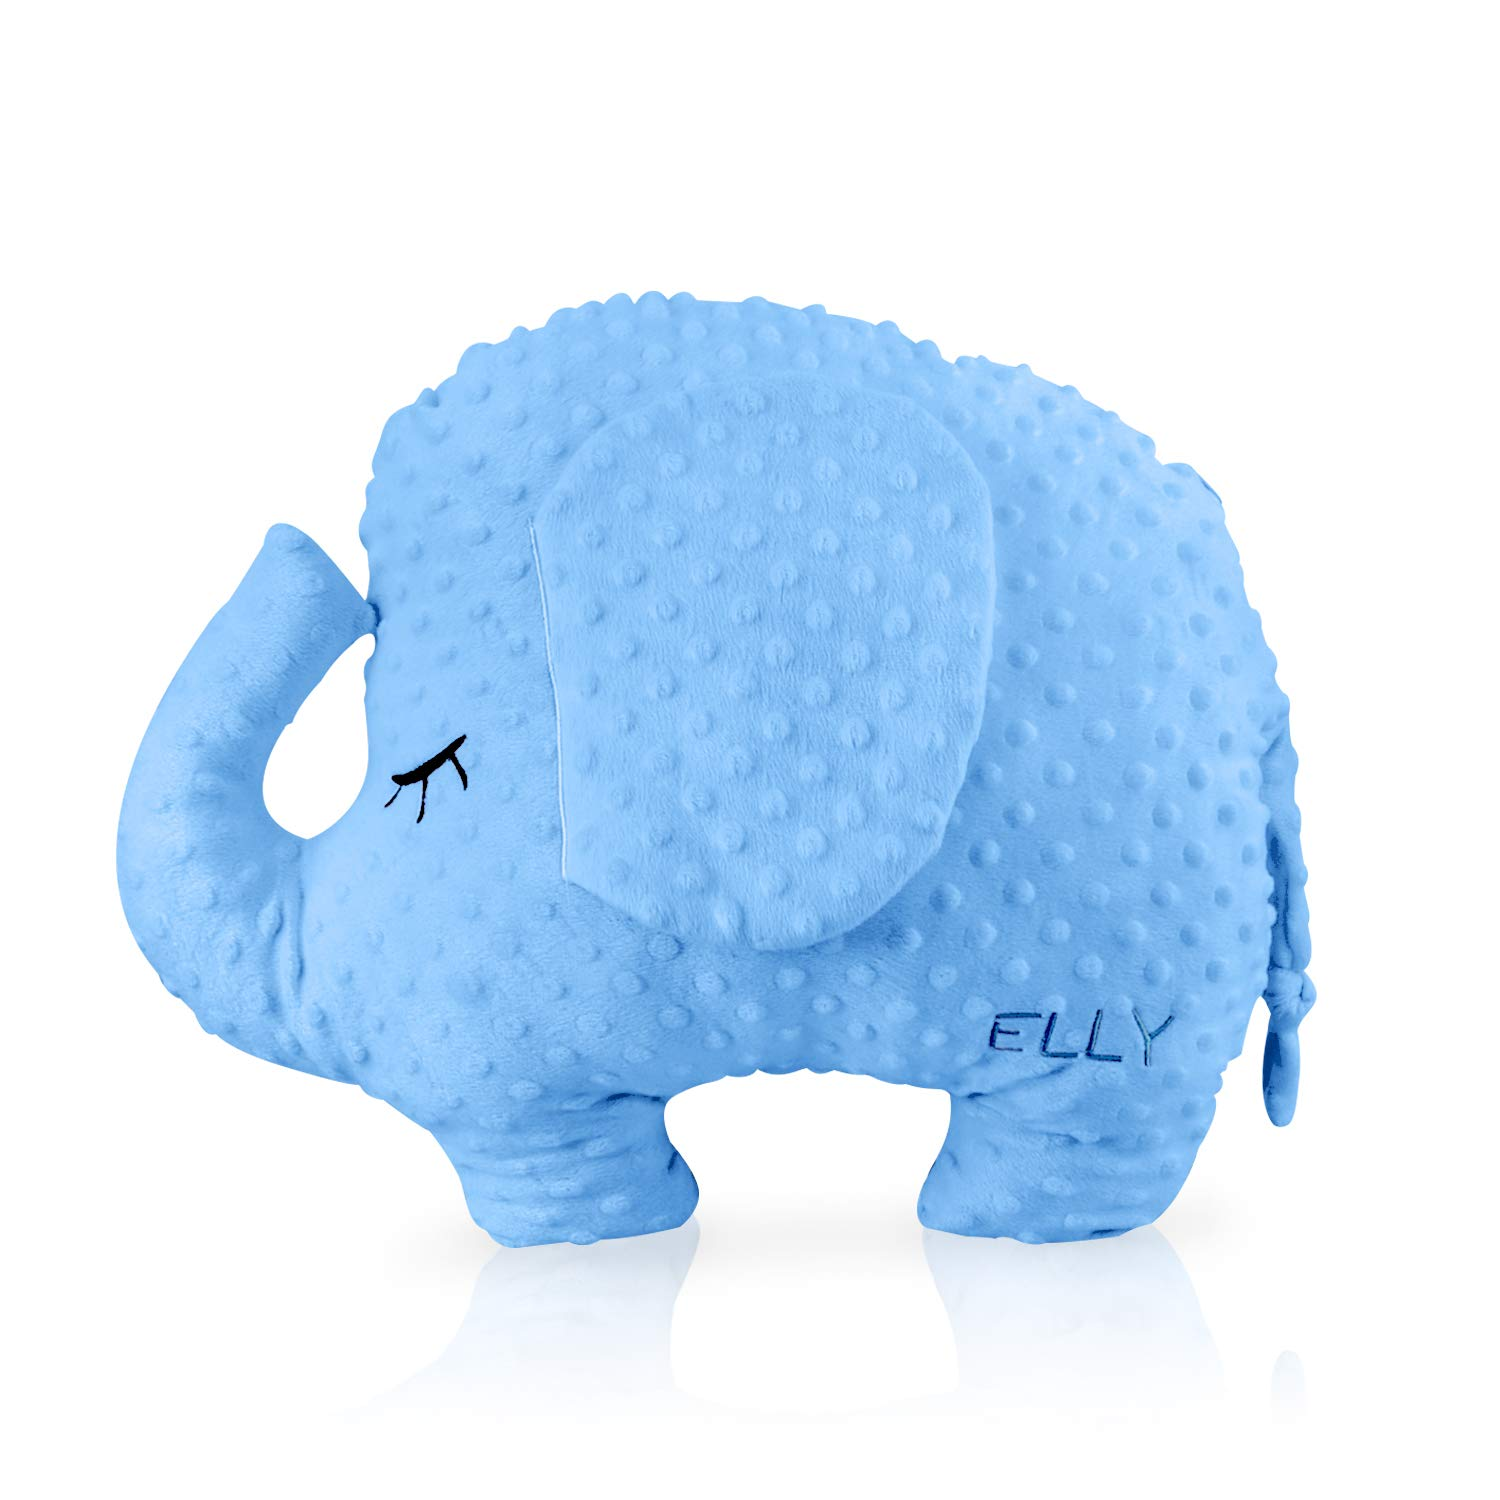 Artoid Conch Sensory Weighted Cuddly Elephant for Adult and Kids | 4lbs, 14''x18'', 100% Cotton & Glass Beads | Weighted Stuffed Animal Sensory Support for Calm, Improve Focus and Attention